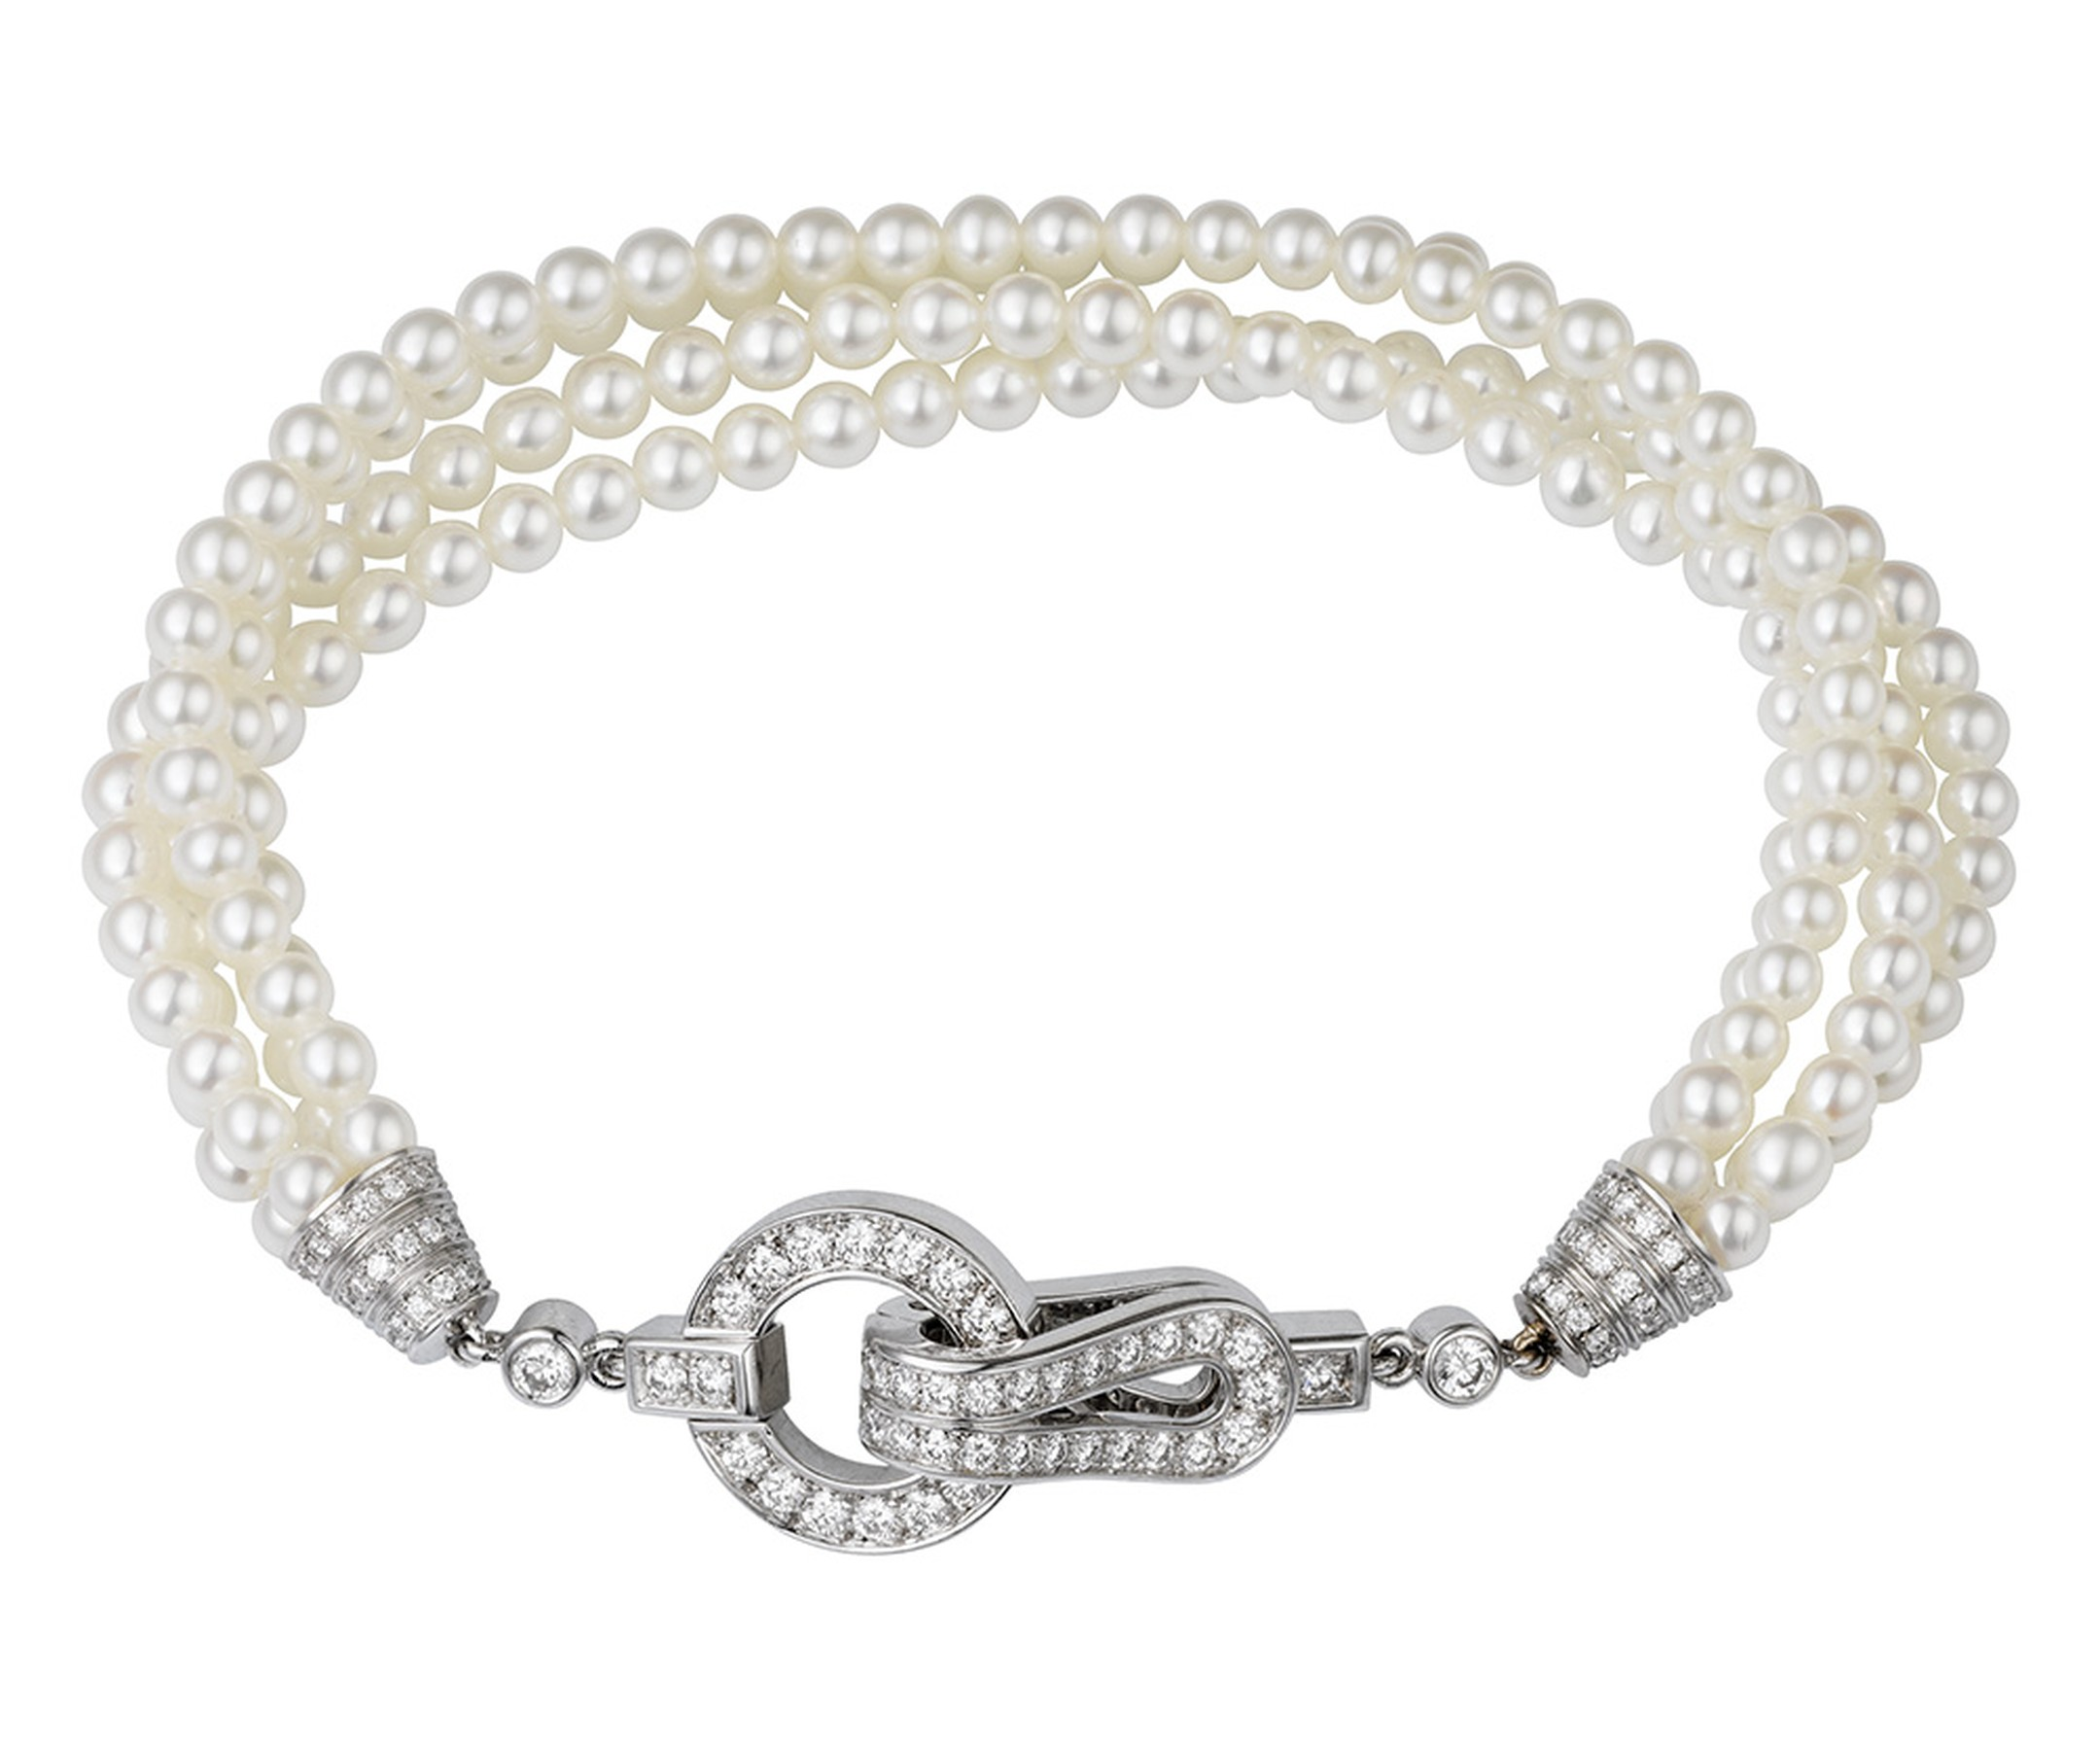 Cartierpearlbracelet